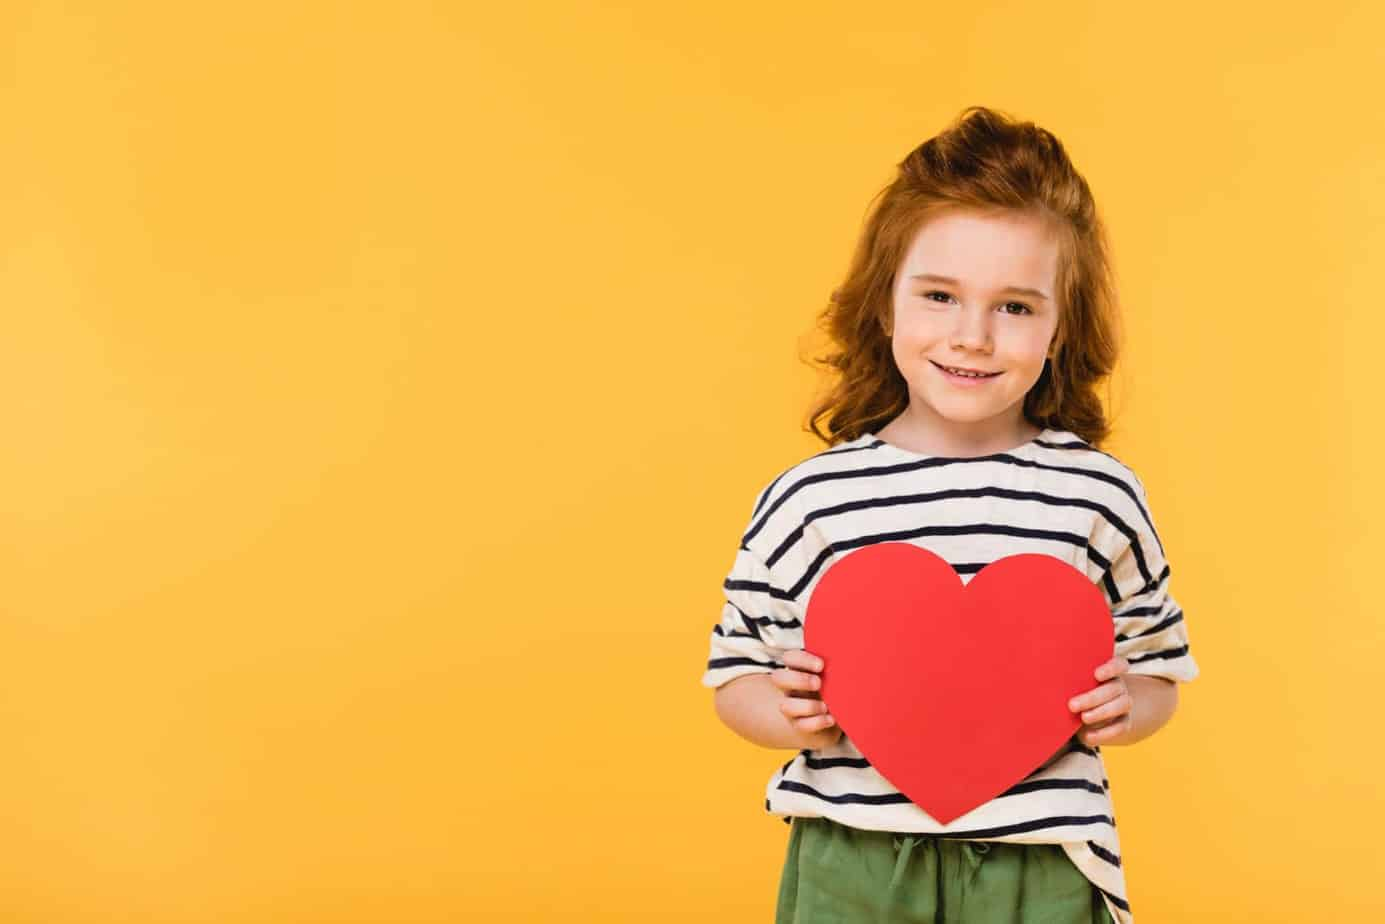 4 printable heart template forms for Valentines Day. Plus, 7 ideas how to use the heart cut out templates with your family, and to share love with others.